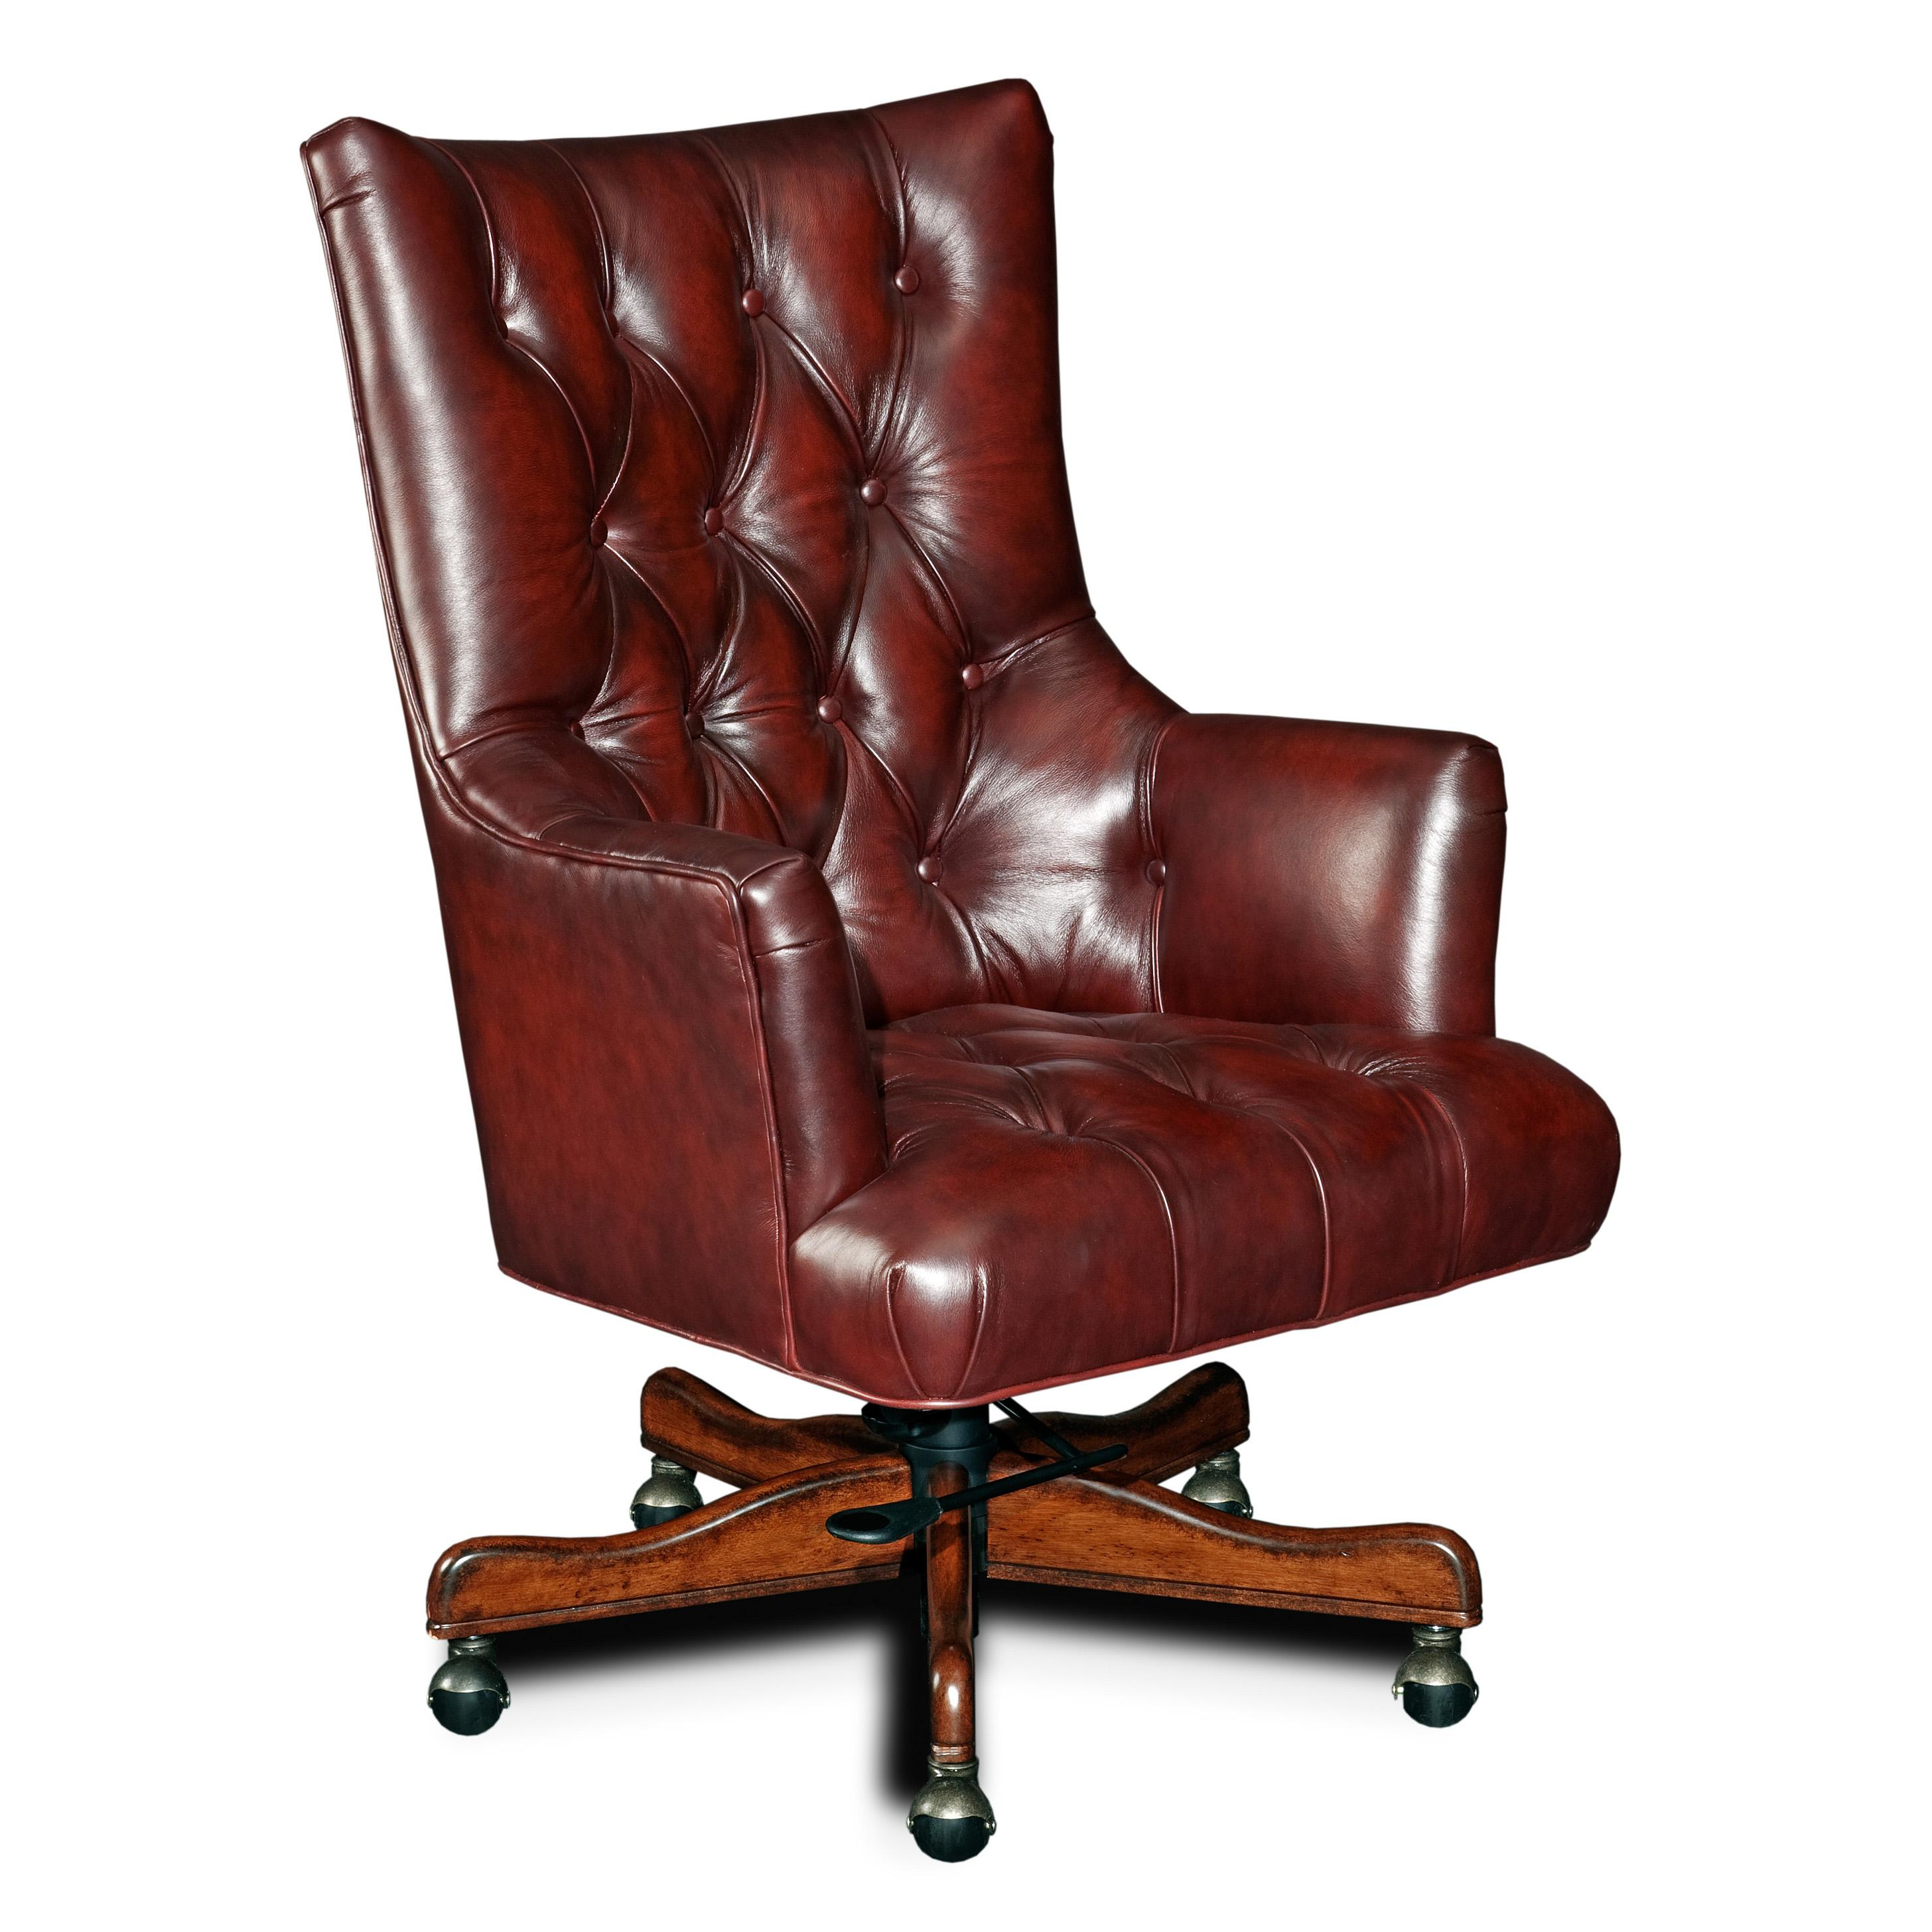 Hooker Furniture Executive Seating Executive Swivel Chair - Item Number: EC360-087